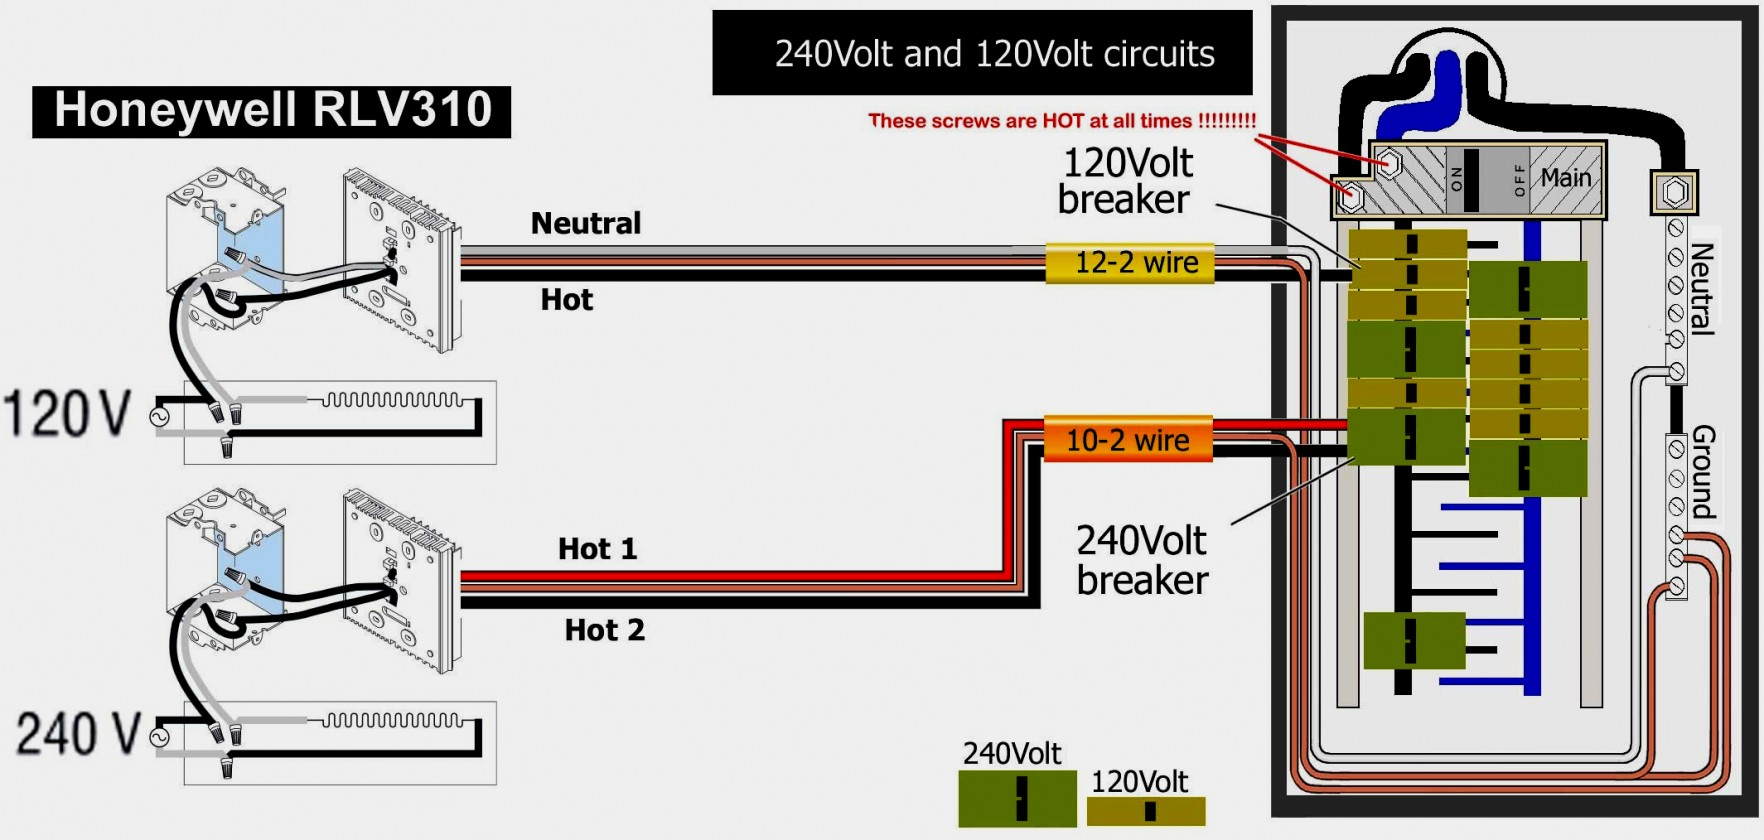 Baseboard Thermostat Wiring Diagram Wires 2 - Data Wiring Diagram Site - Baseboard Heater Thermostat Wiring Diagram